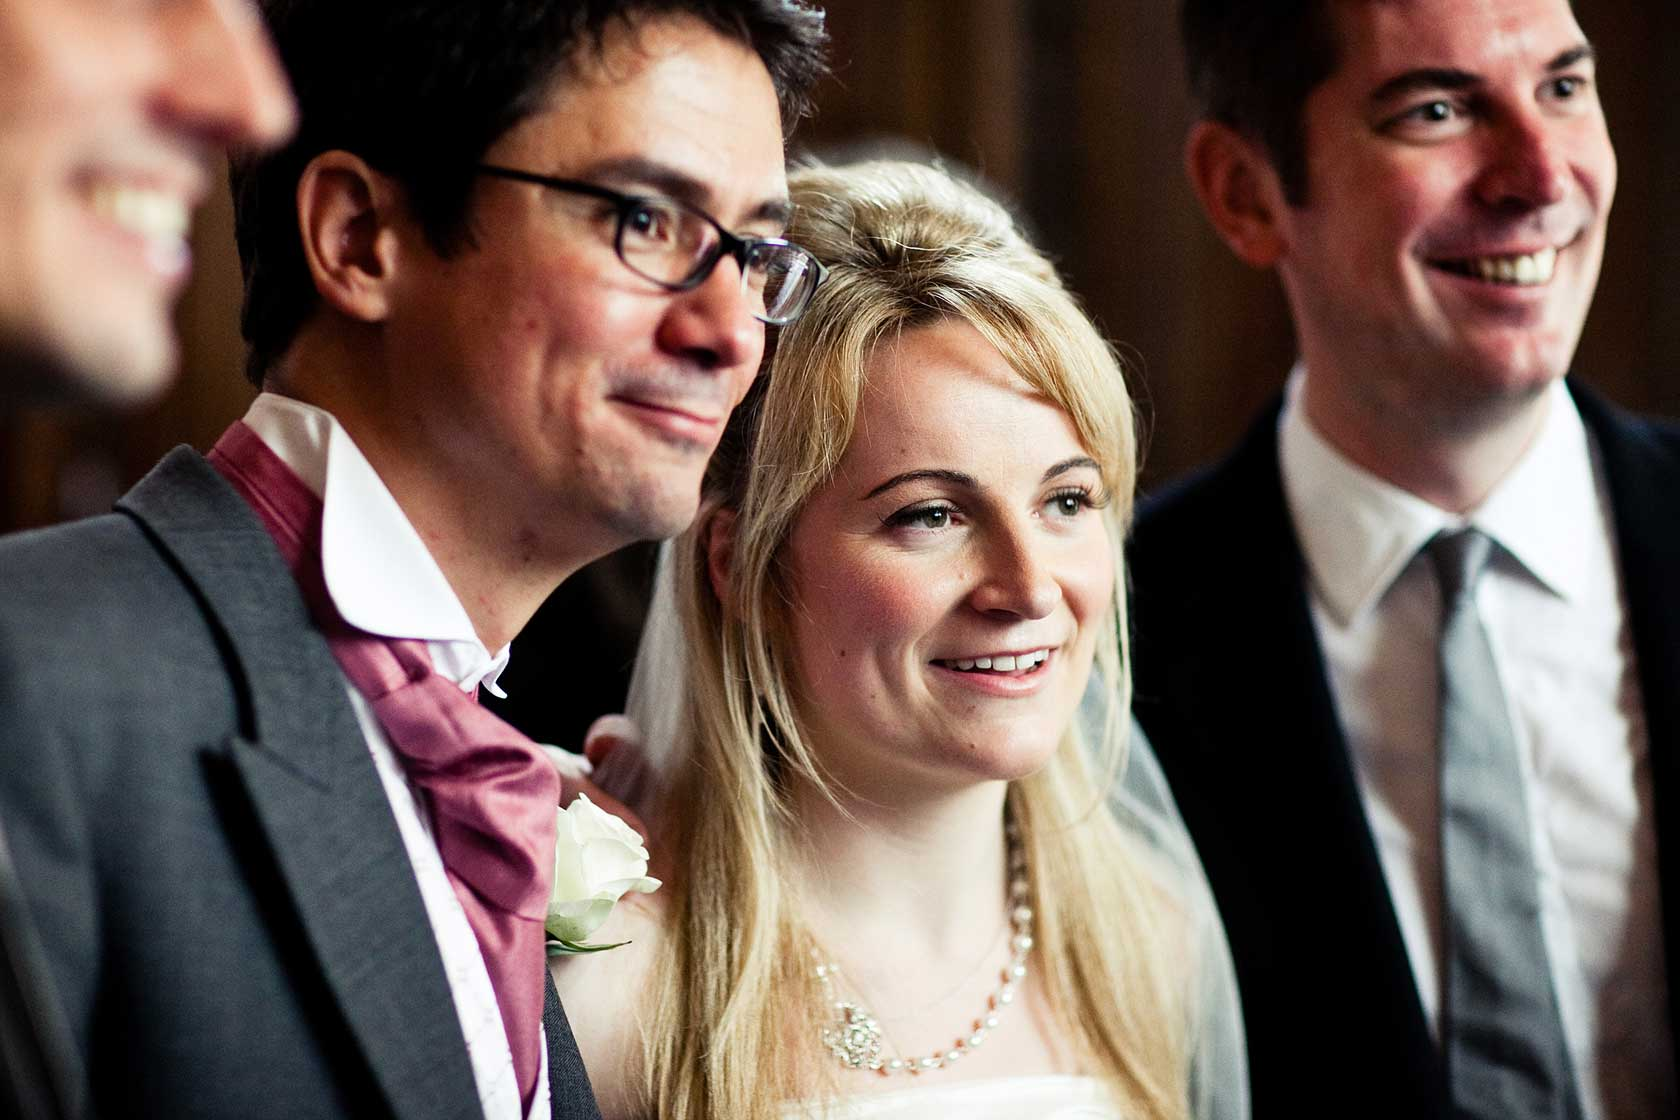 Reportage Wedding Photography in the City of London